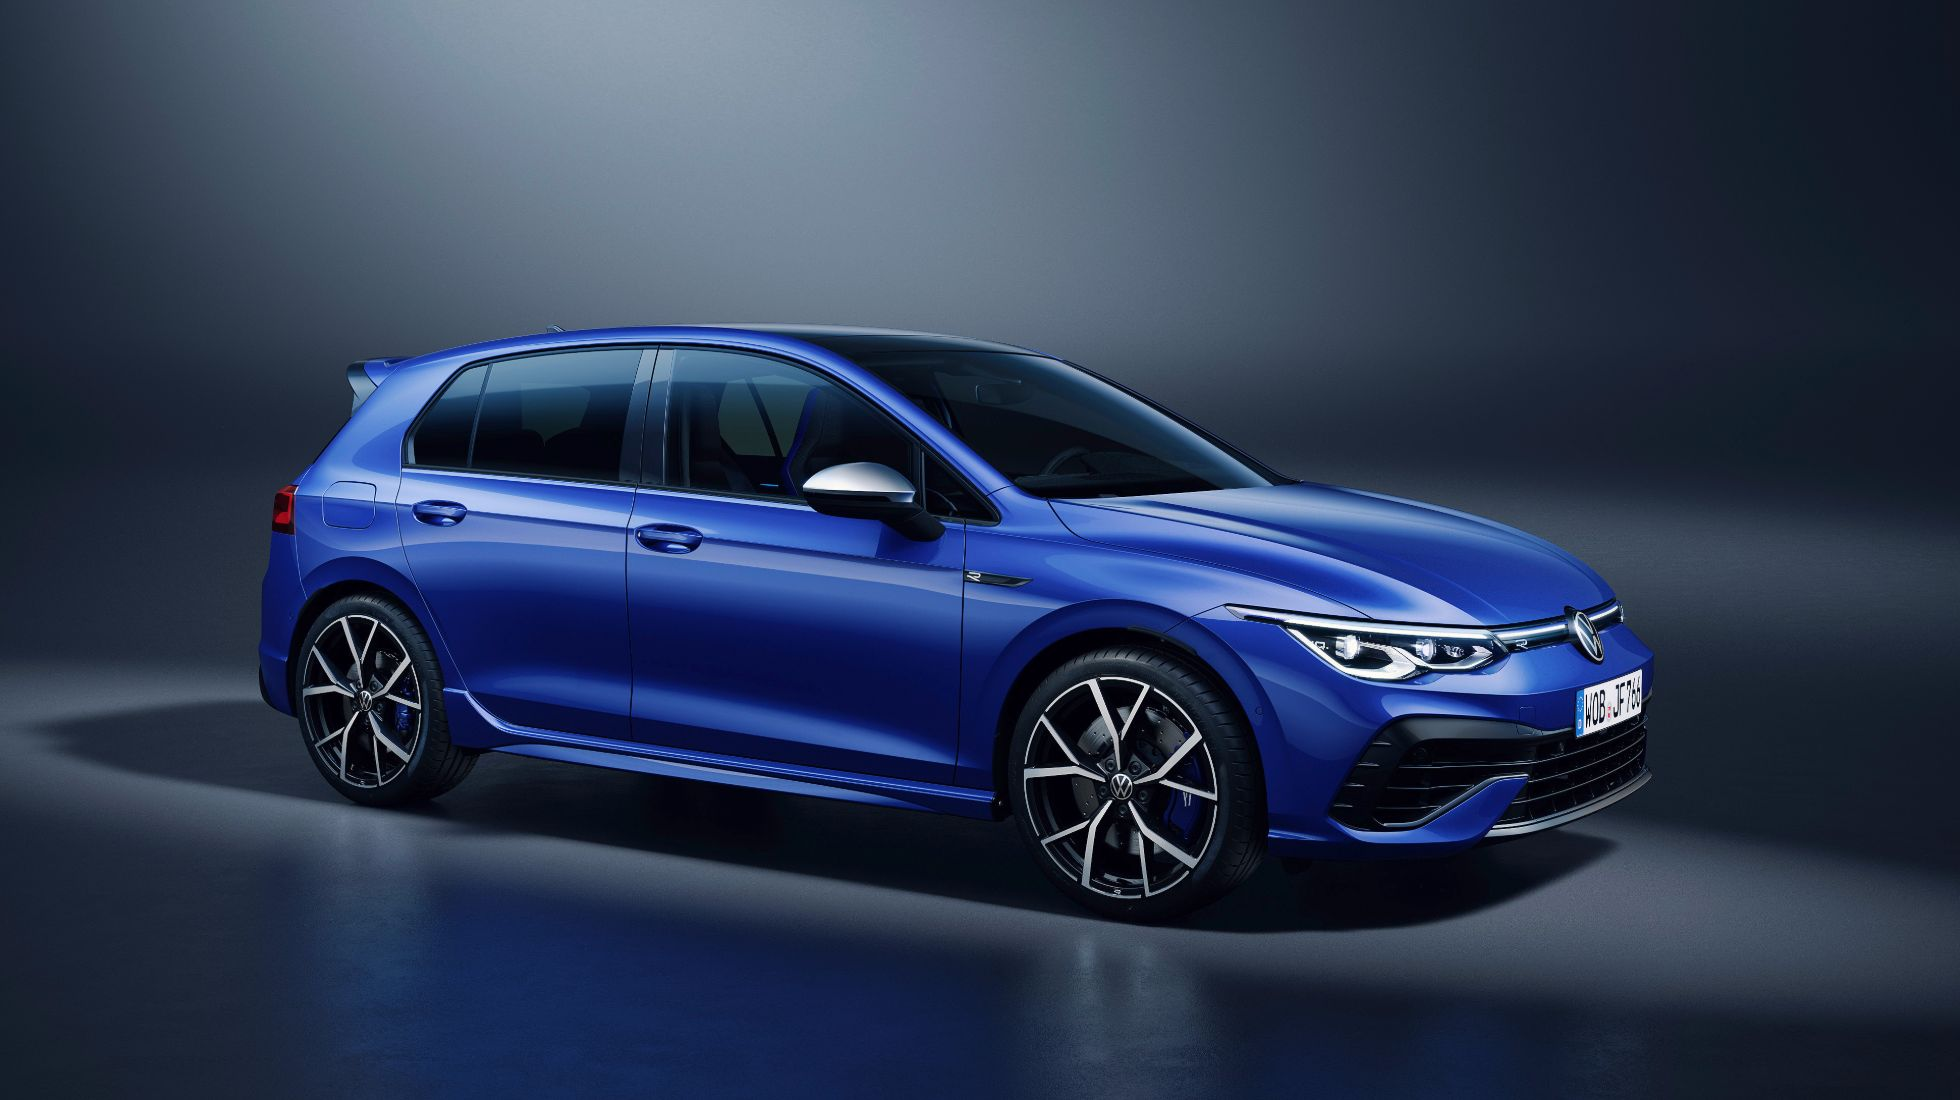 Volkswagen's 8th generation Golf R unveiled and detailed